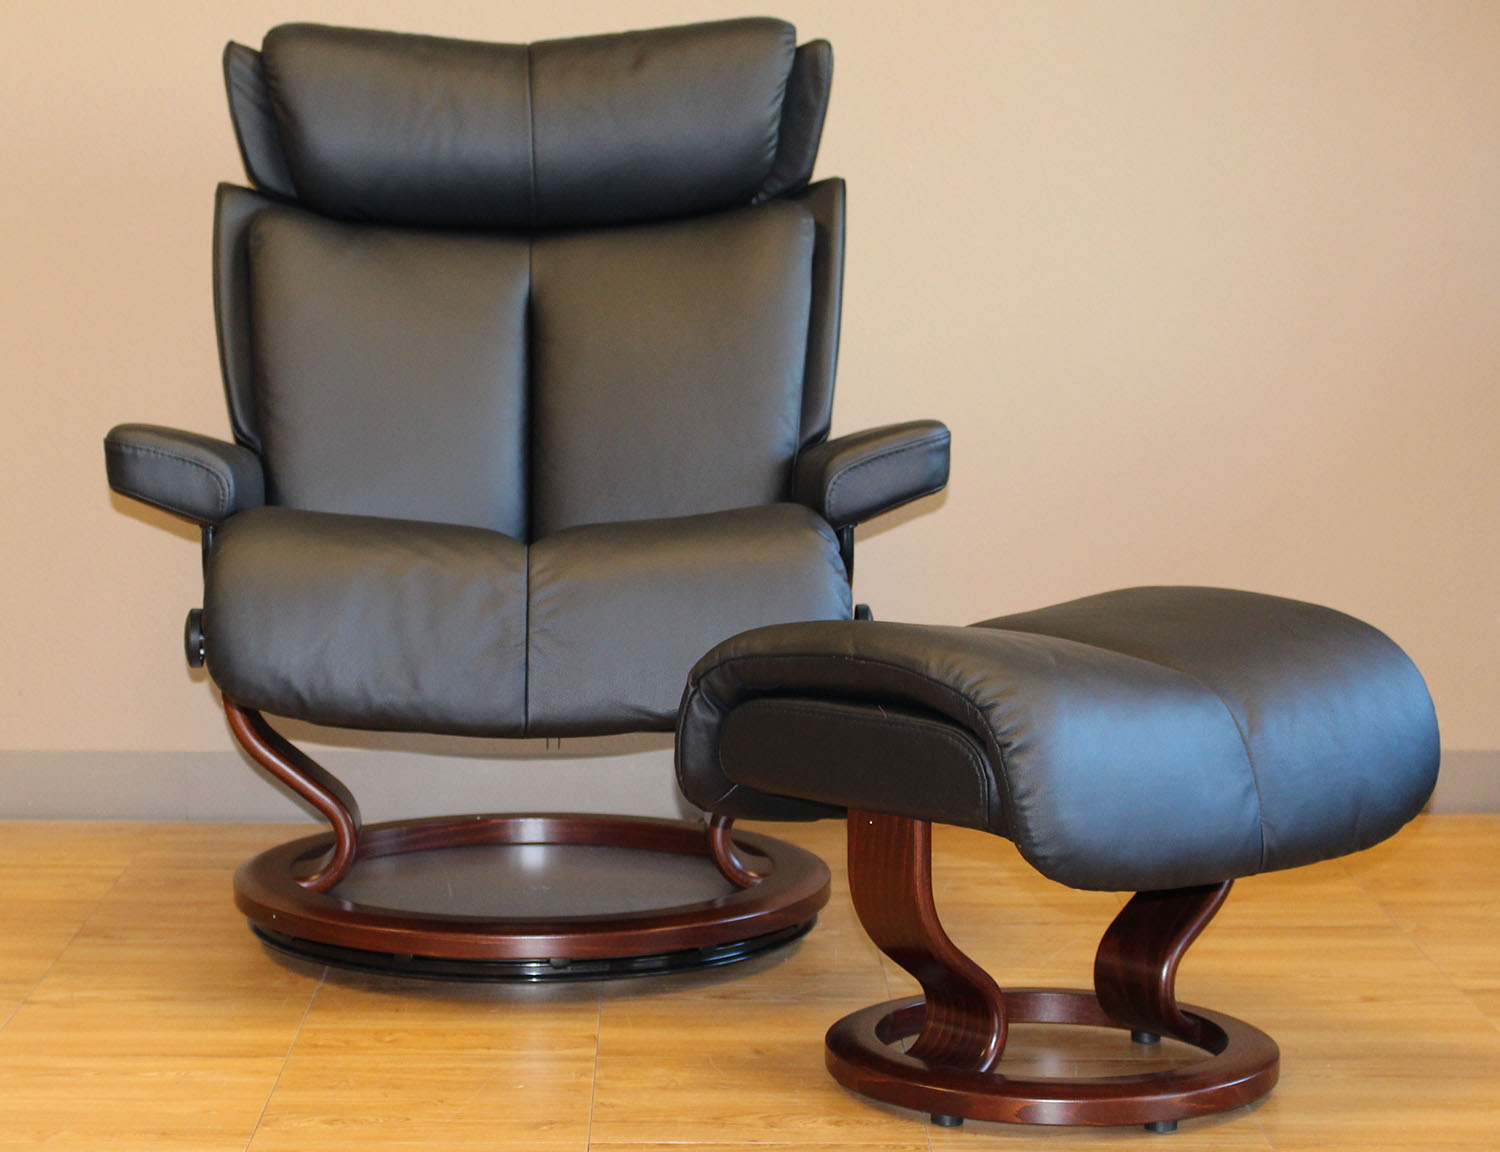 Stressless Paloma Stressless Magic Paloma Black Leather Recliner Chair And Ottoman By Ekornes